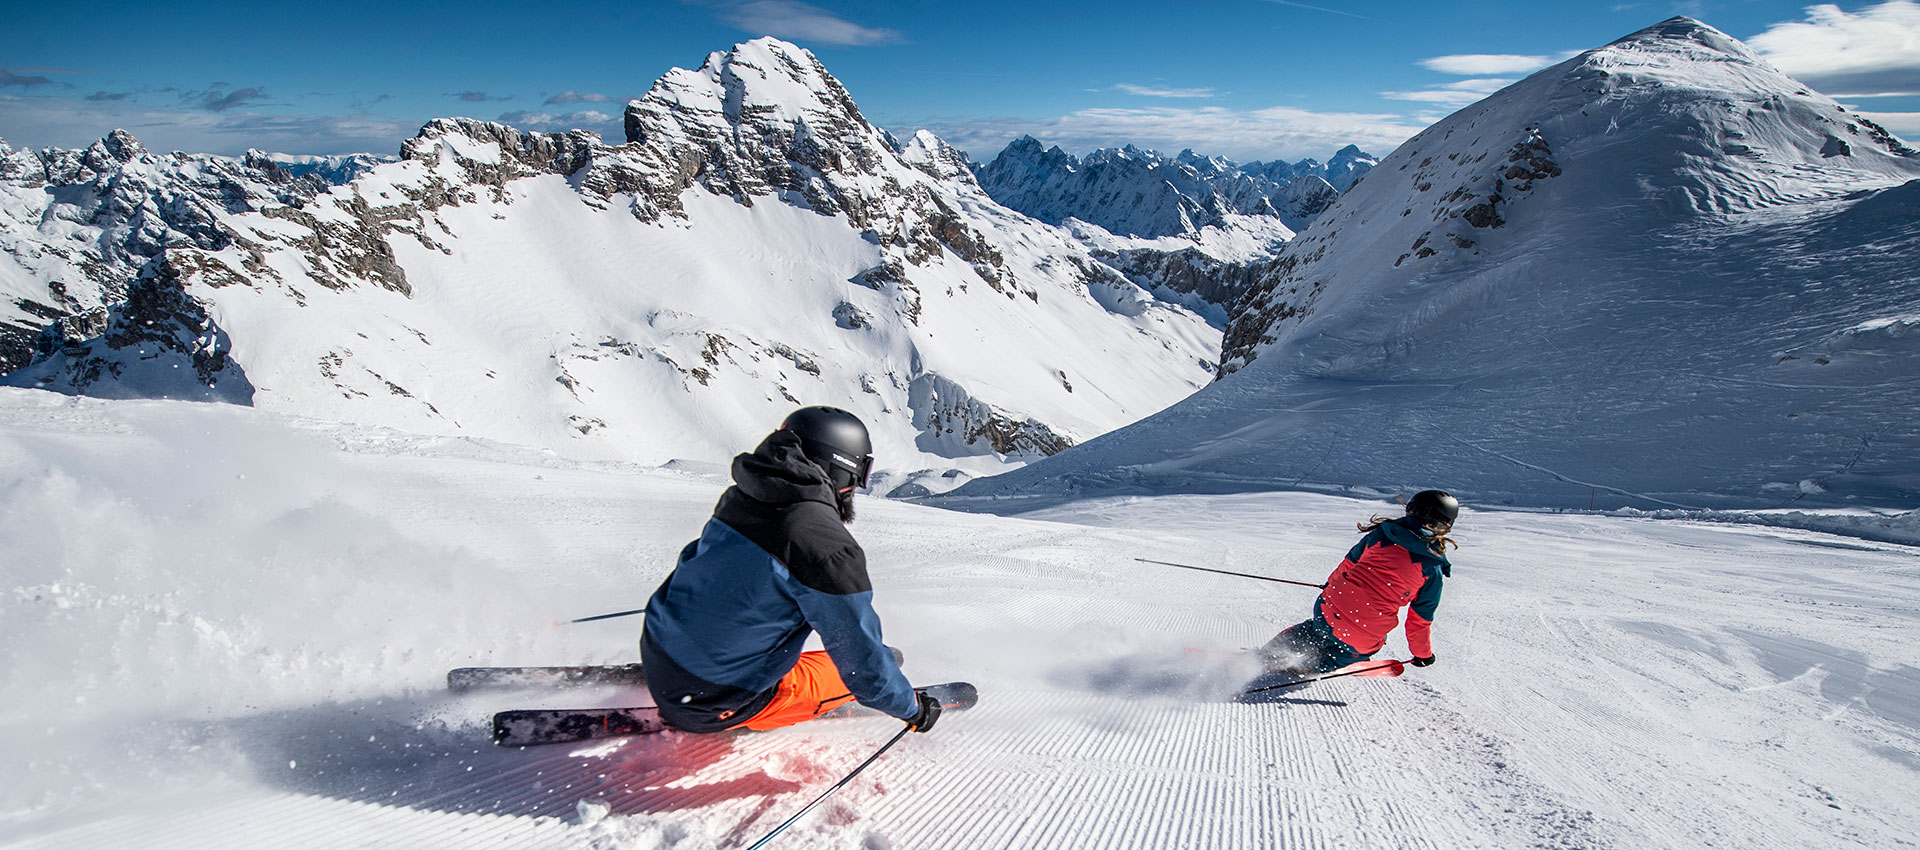 Over 122 Ski Options for the 2019/2020 Season